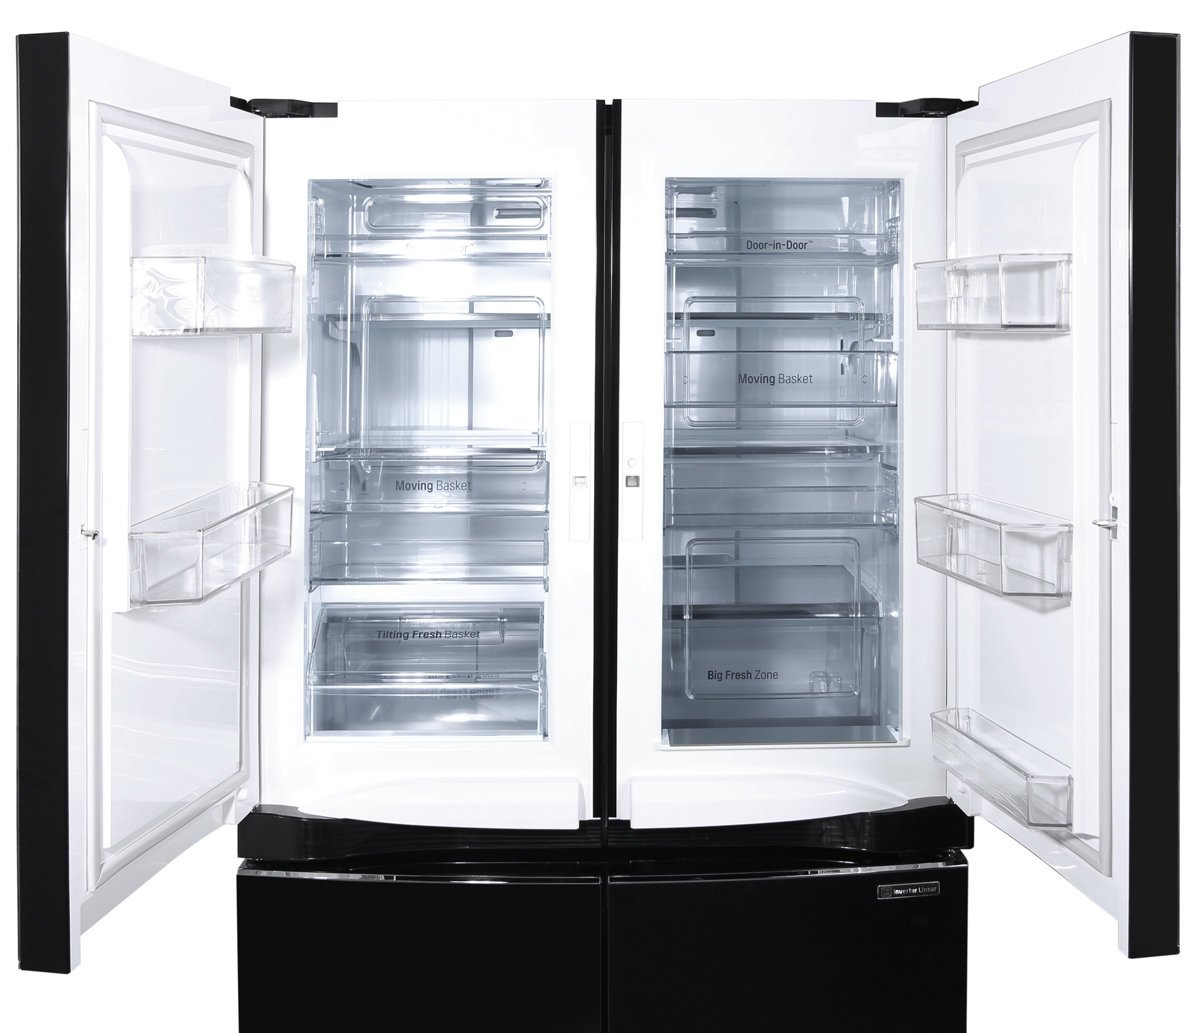 LG GF 6D725BGL 725L French Door Fridge